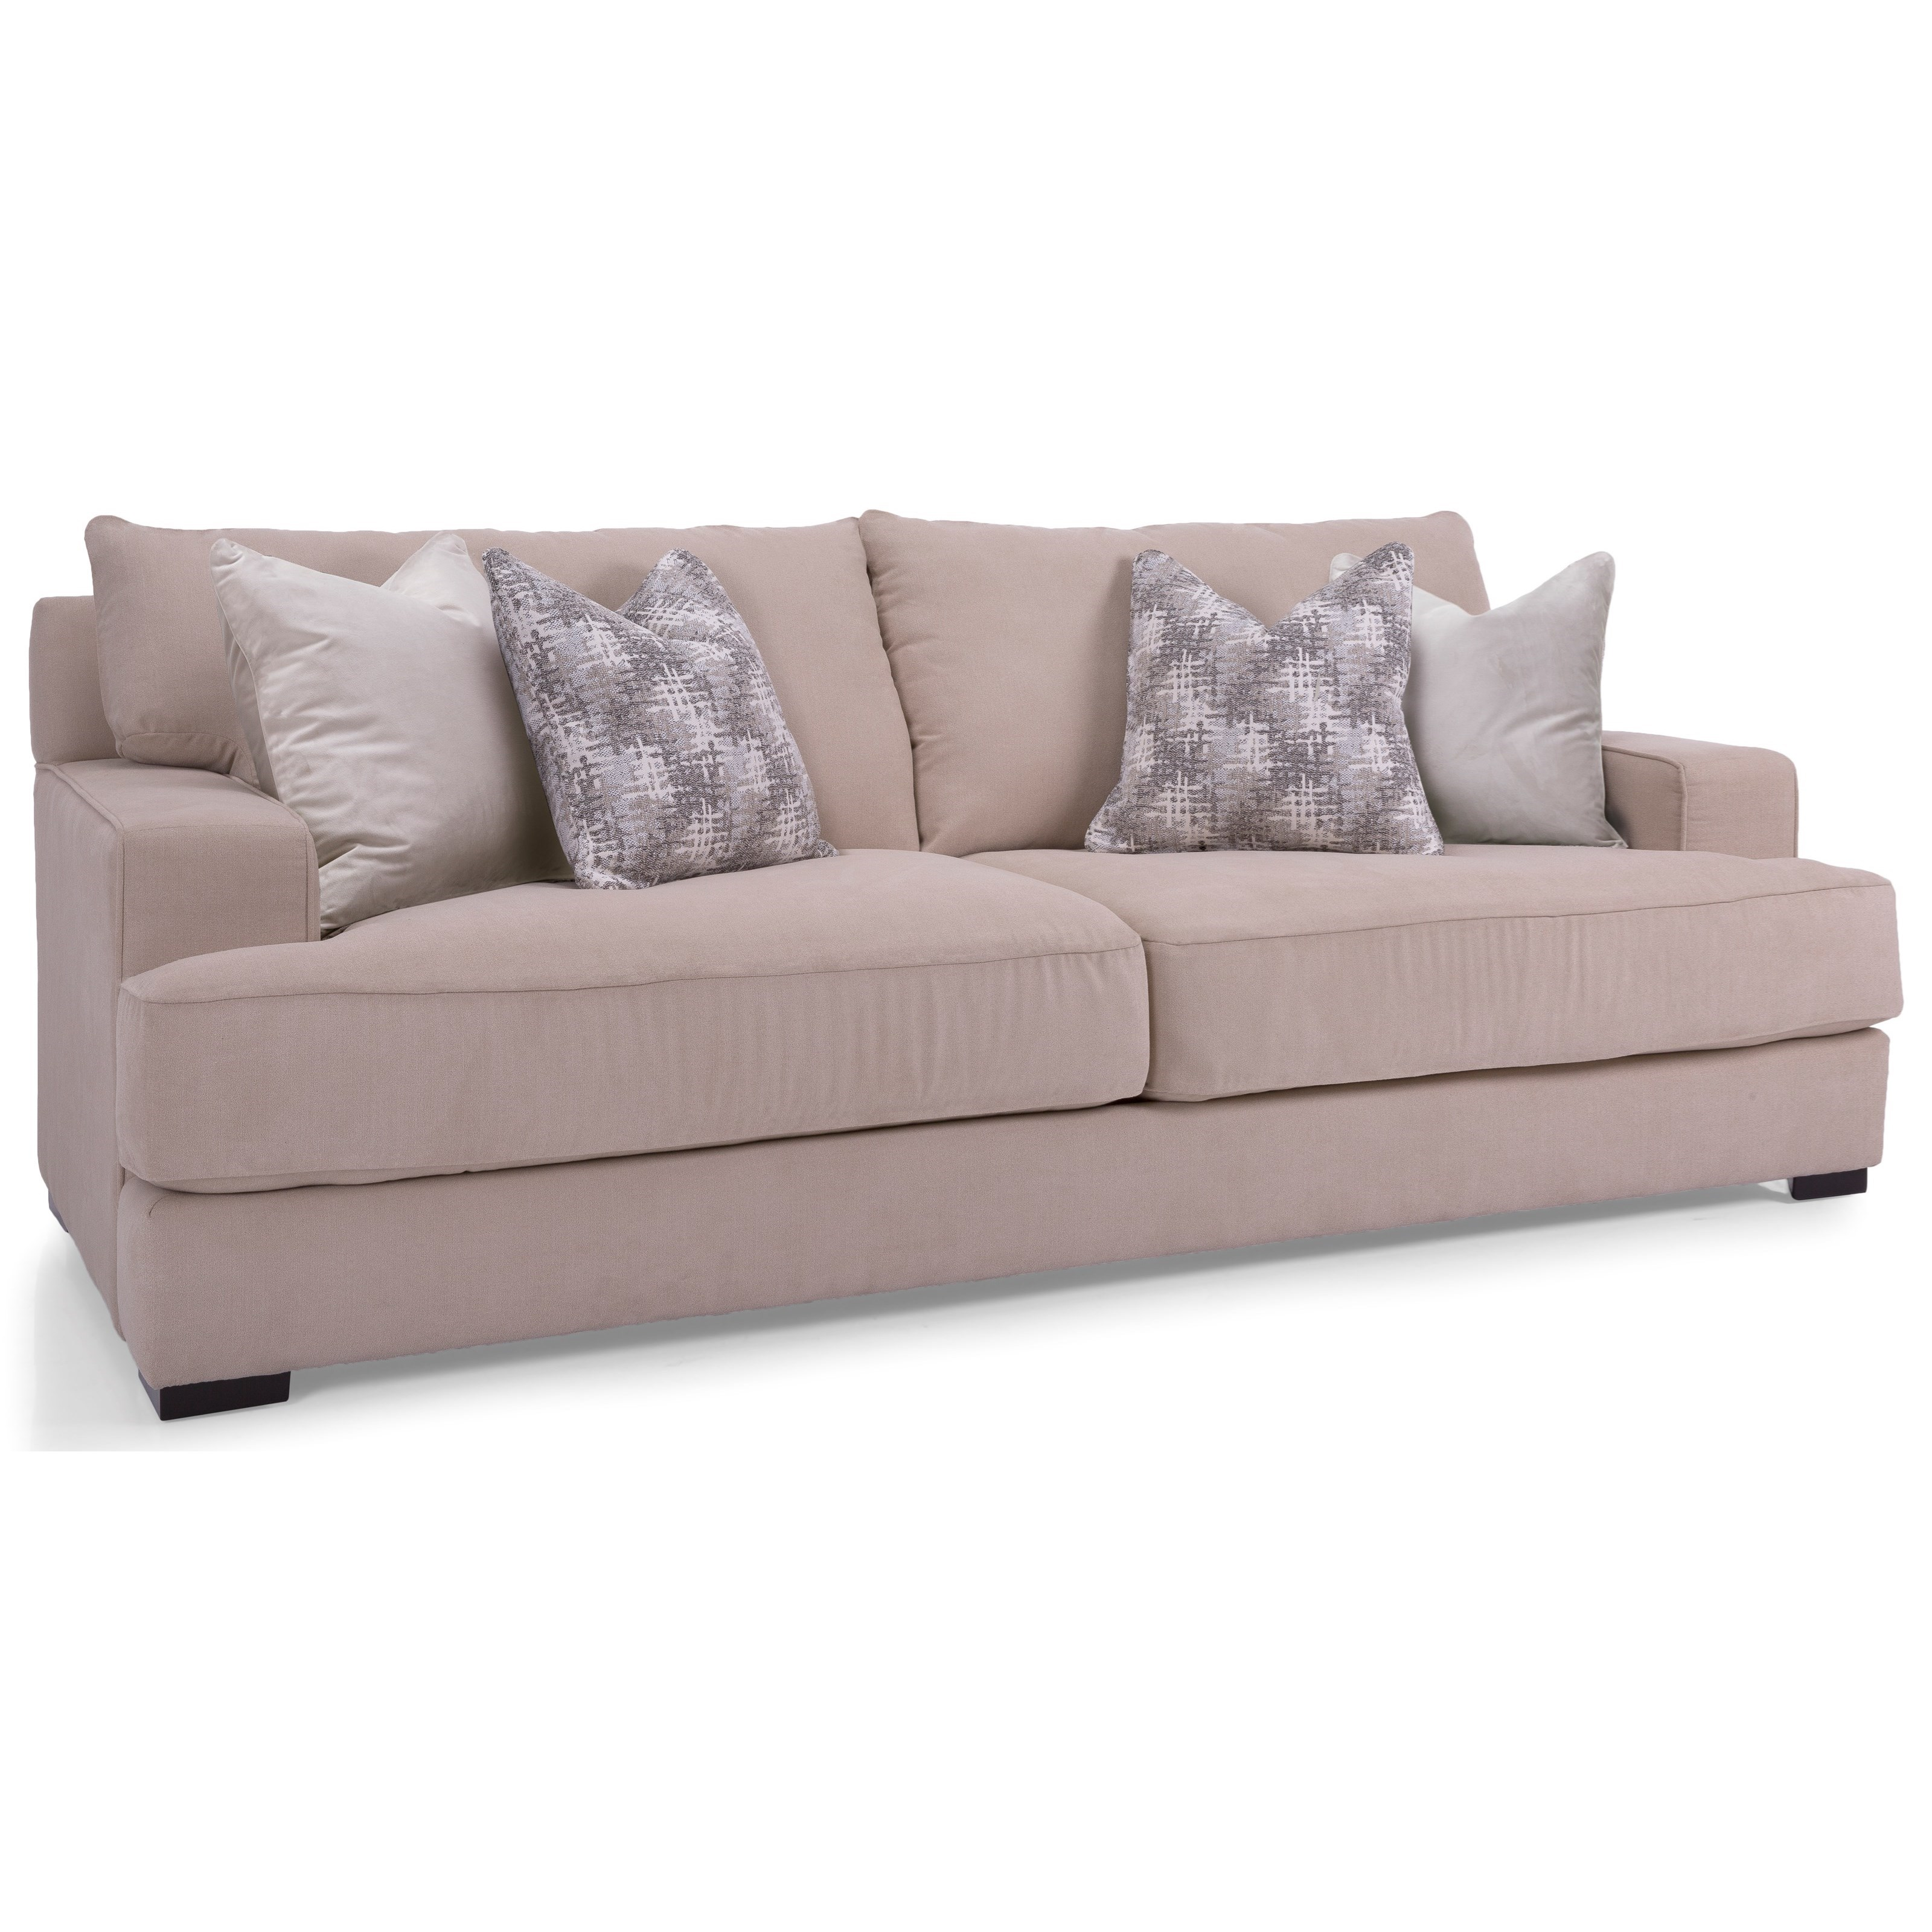 2702 Sofa by Taelor Designs at Bennett's Furniture and Mattresses